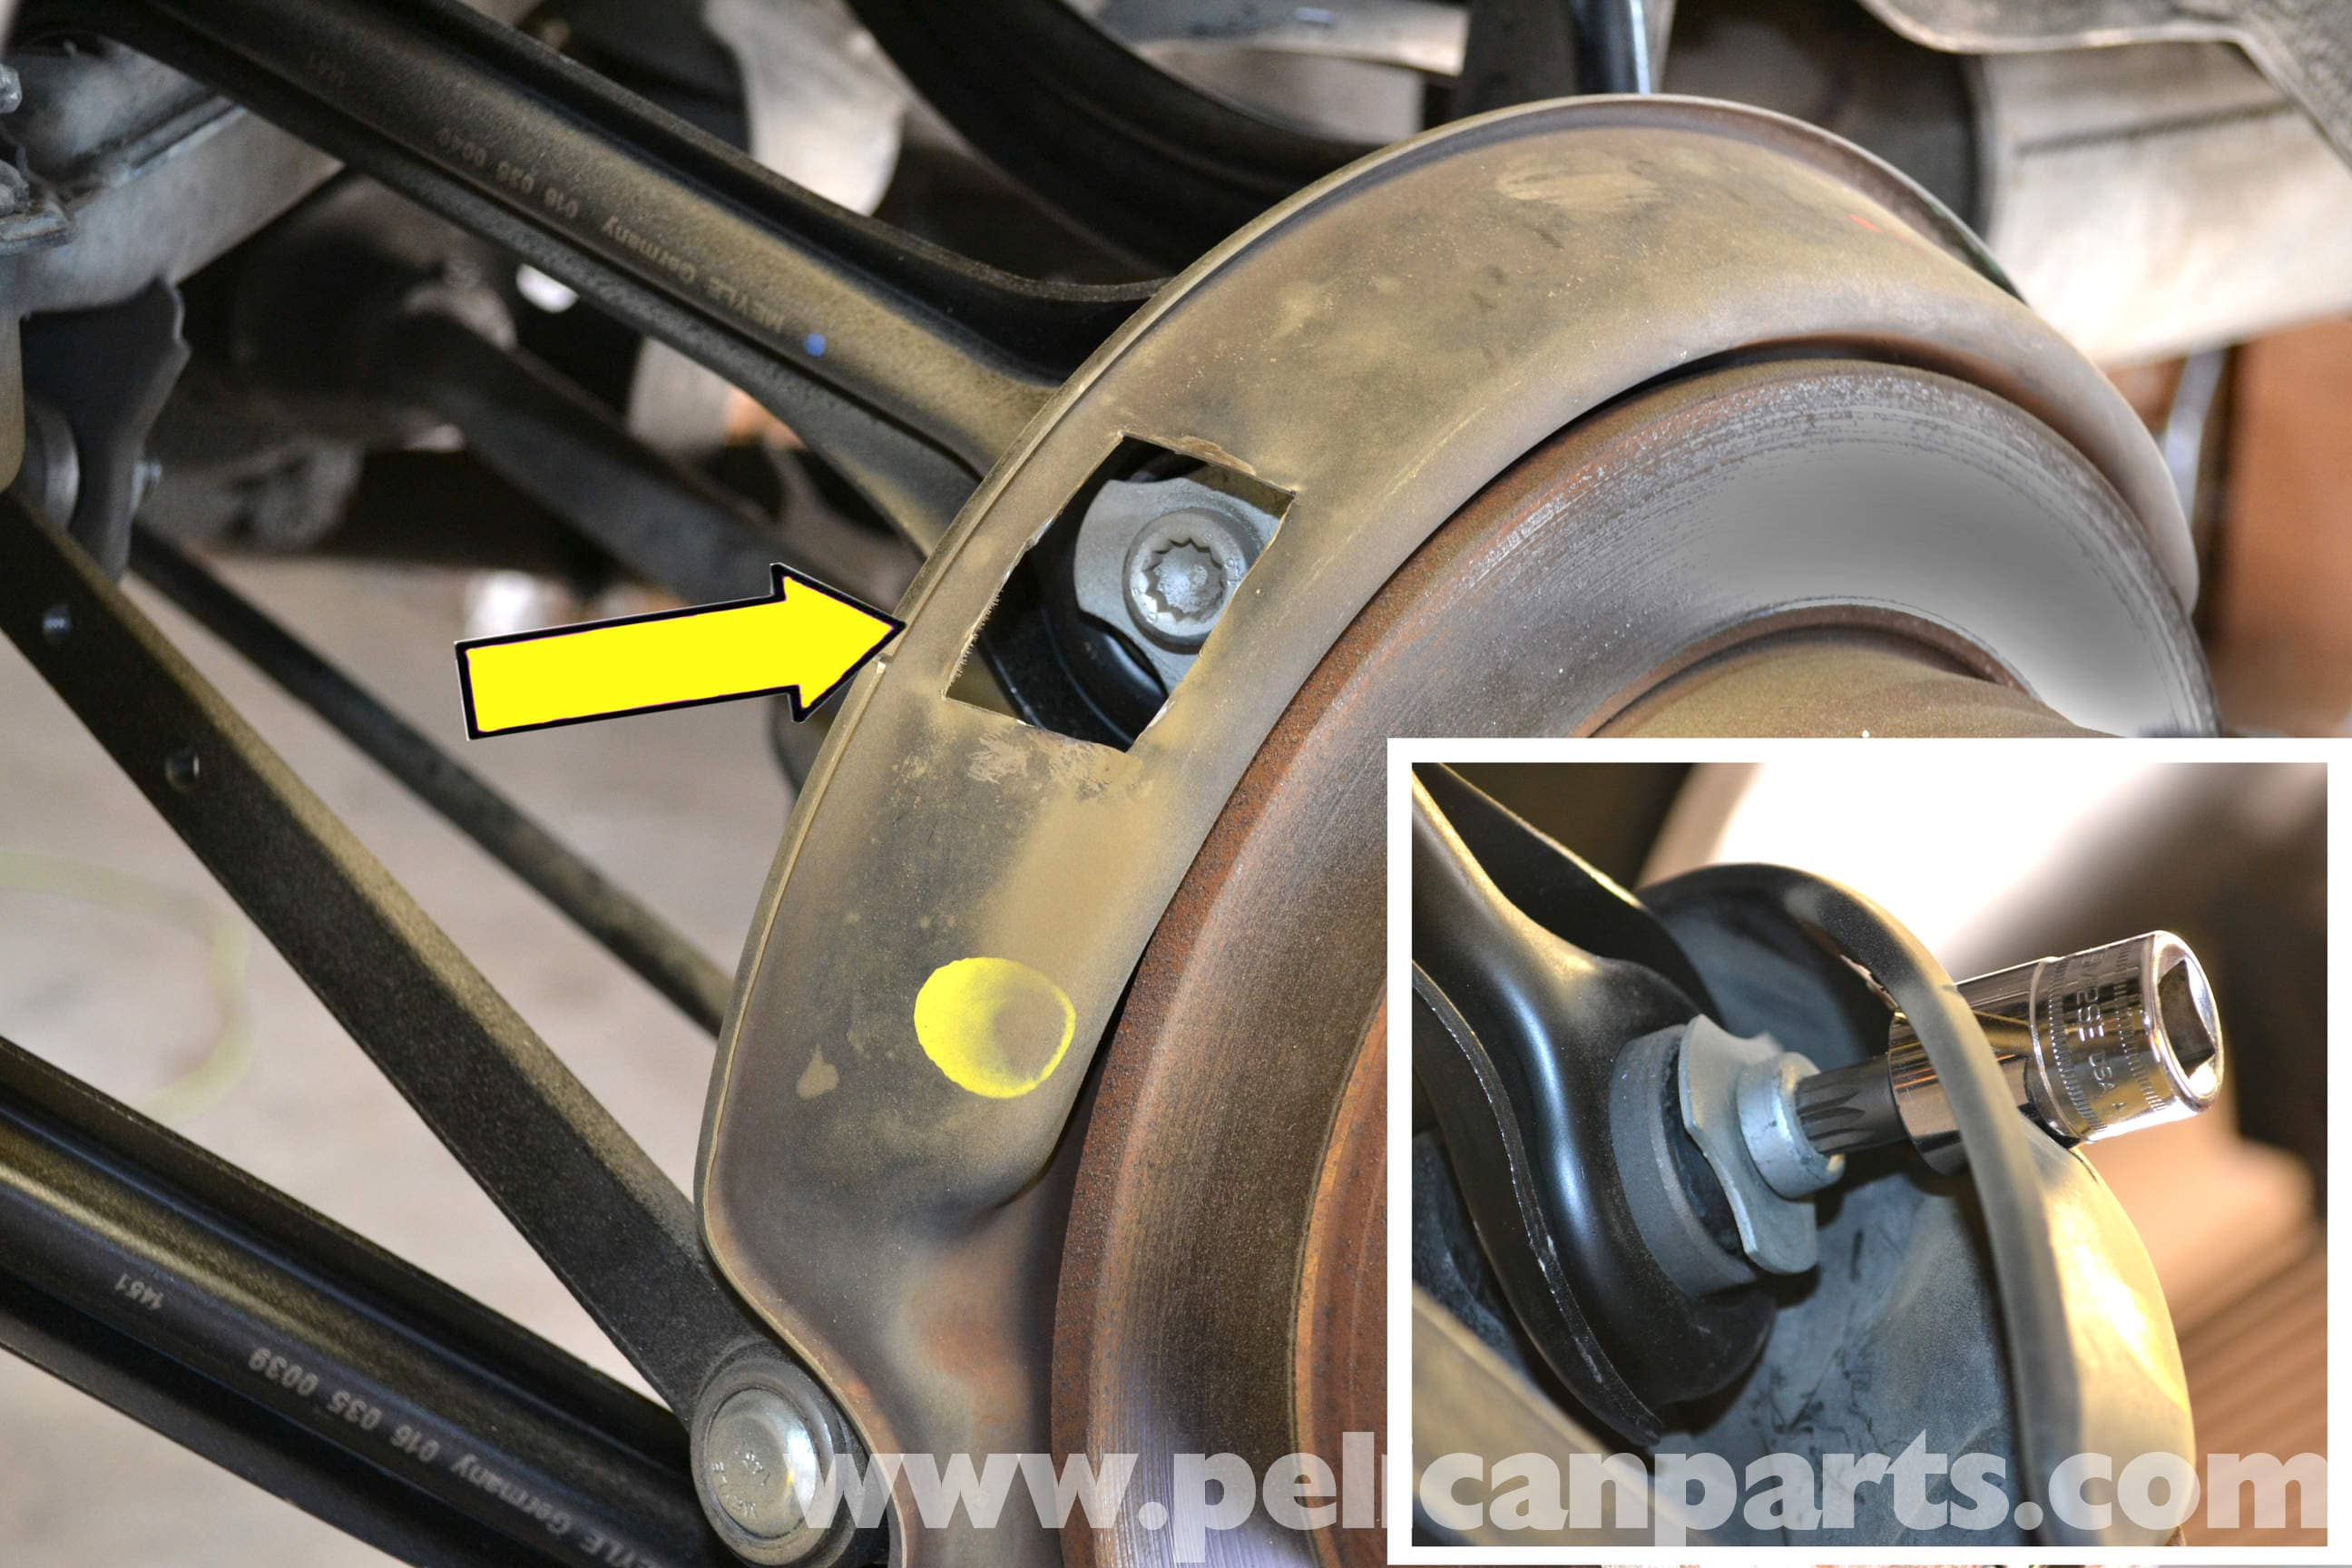 Mercedes-Benz 190E Rear Multi-Link Suspension Replacement